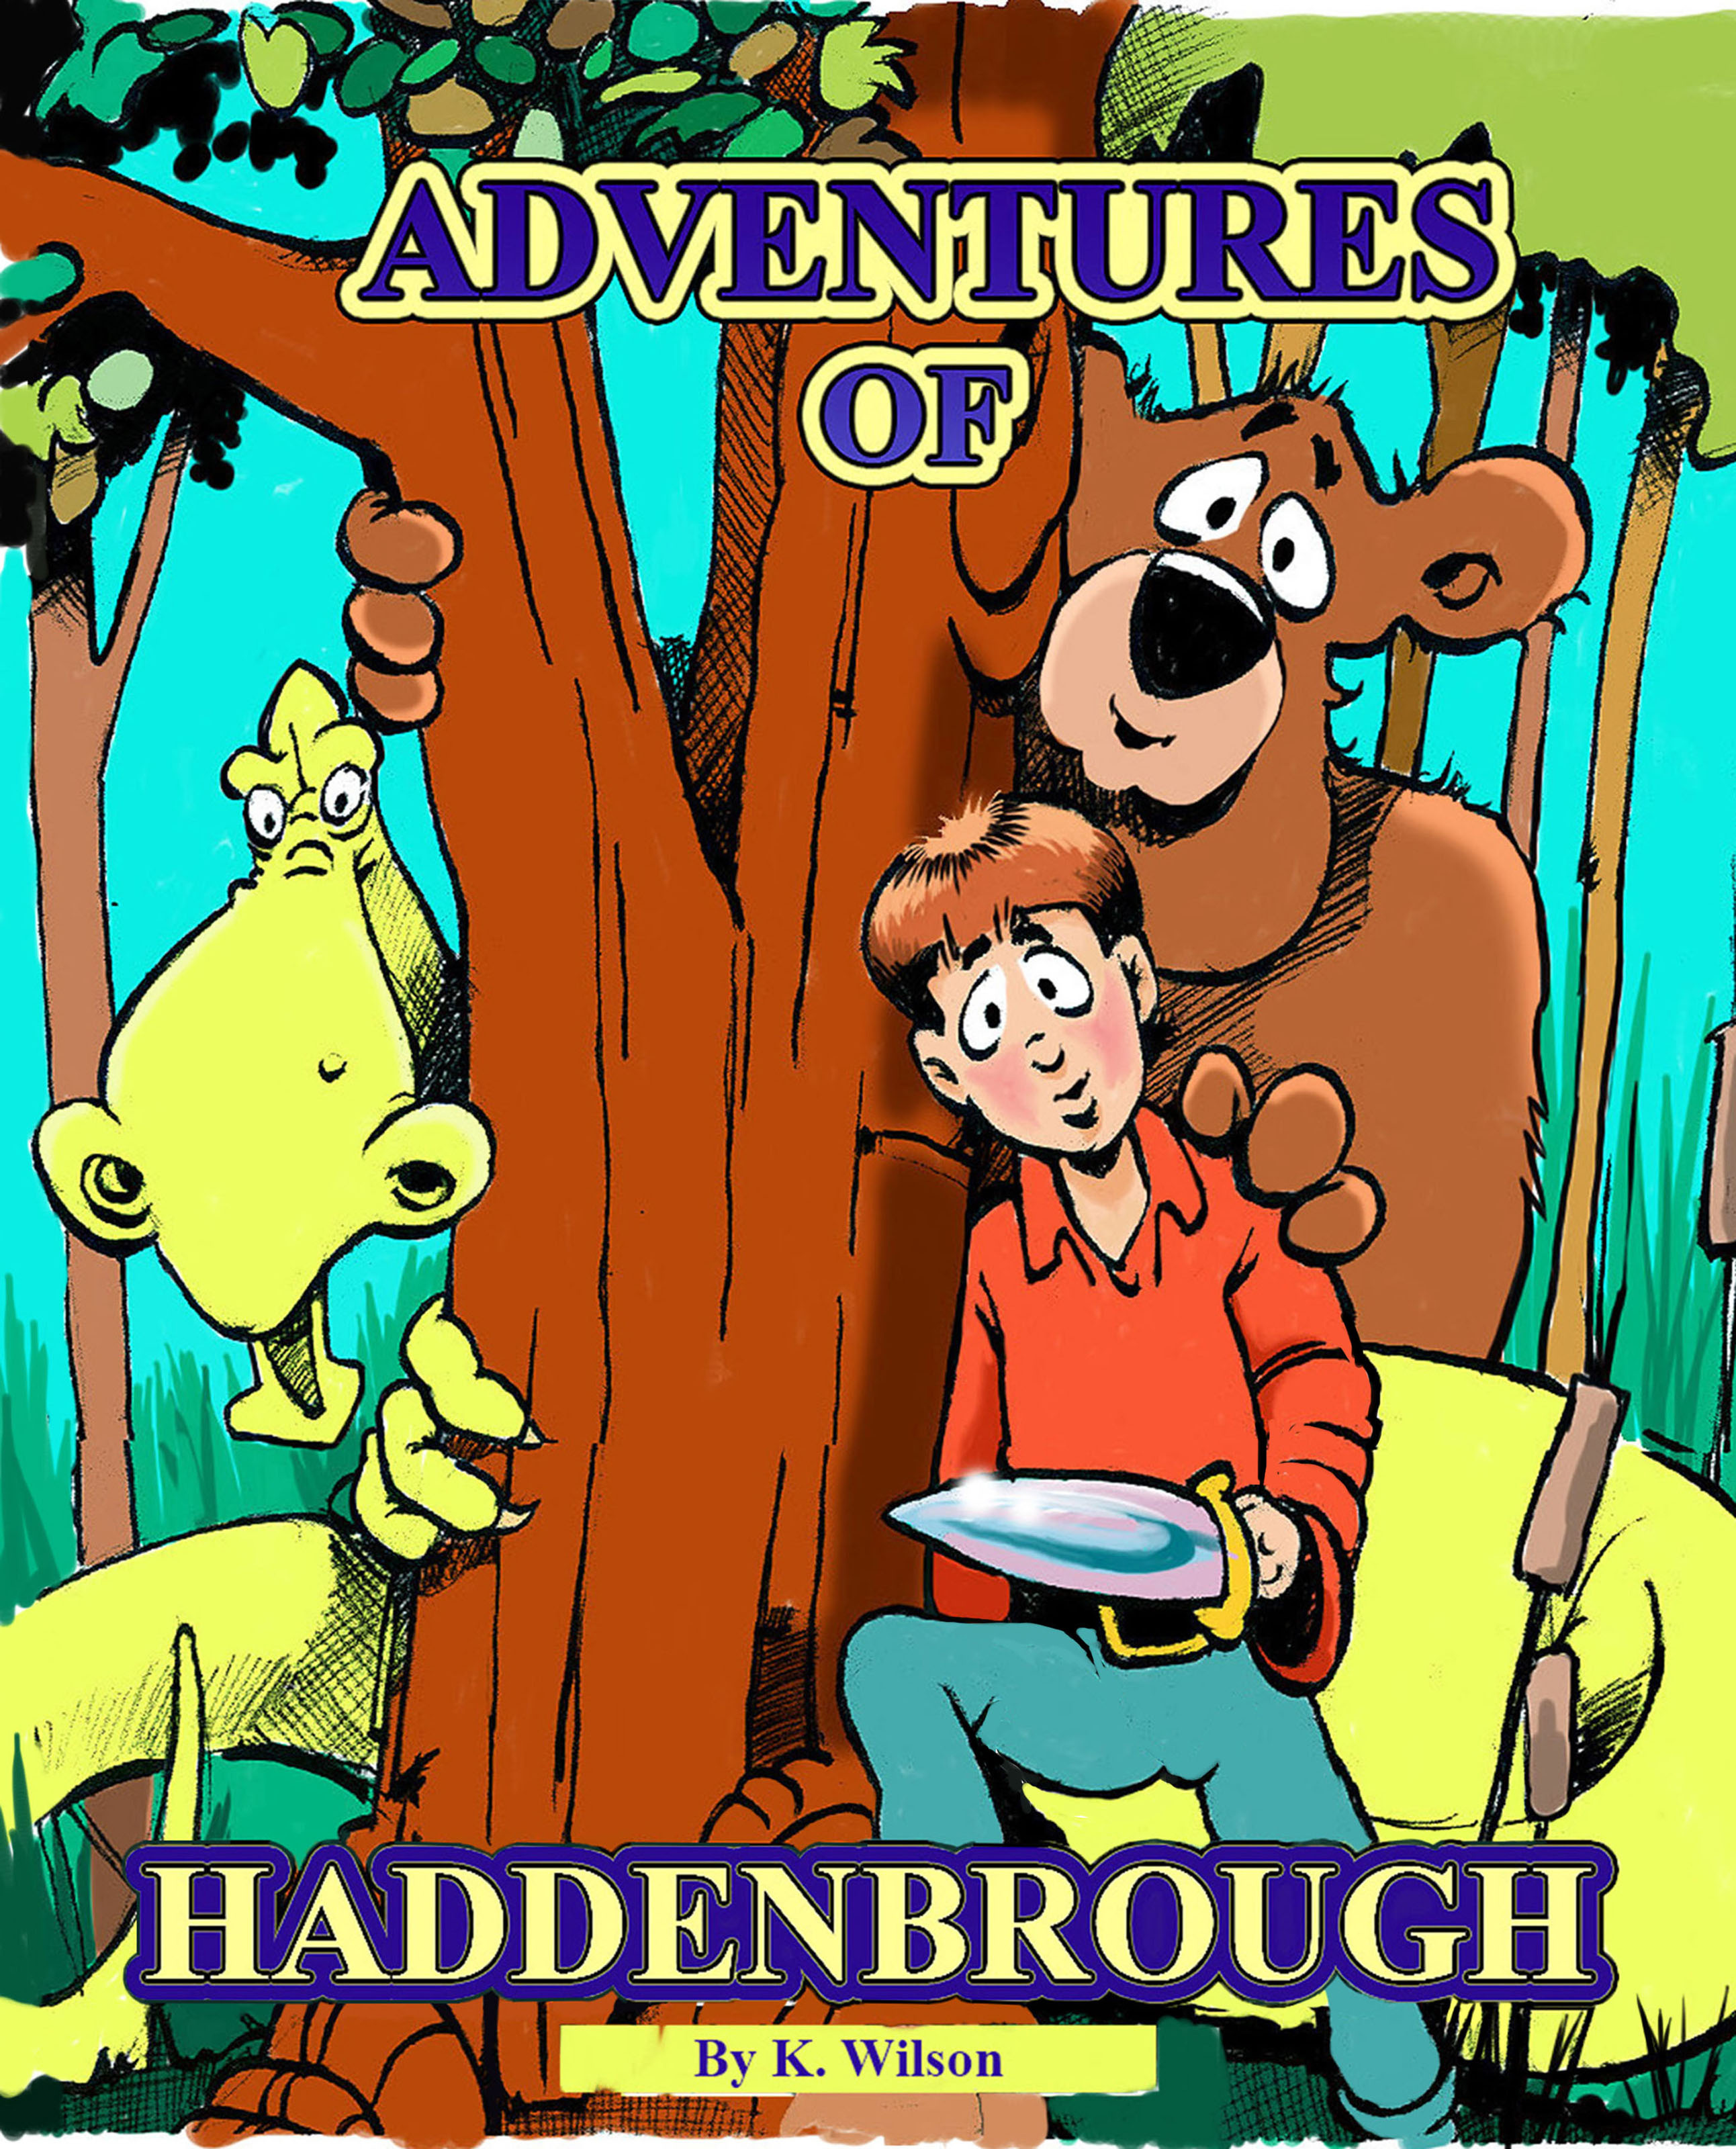 Adventures of Haddenbrough